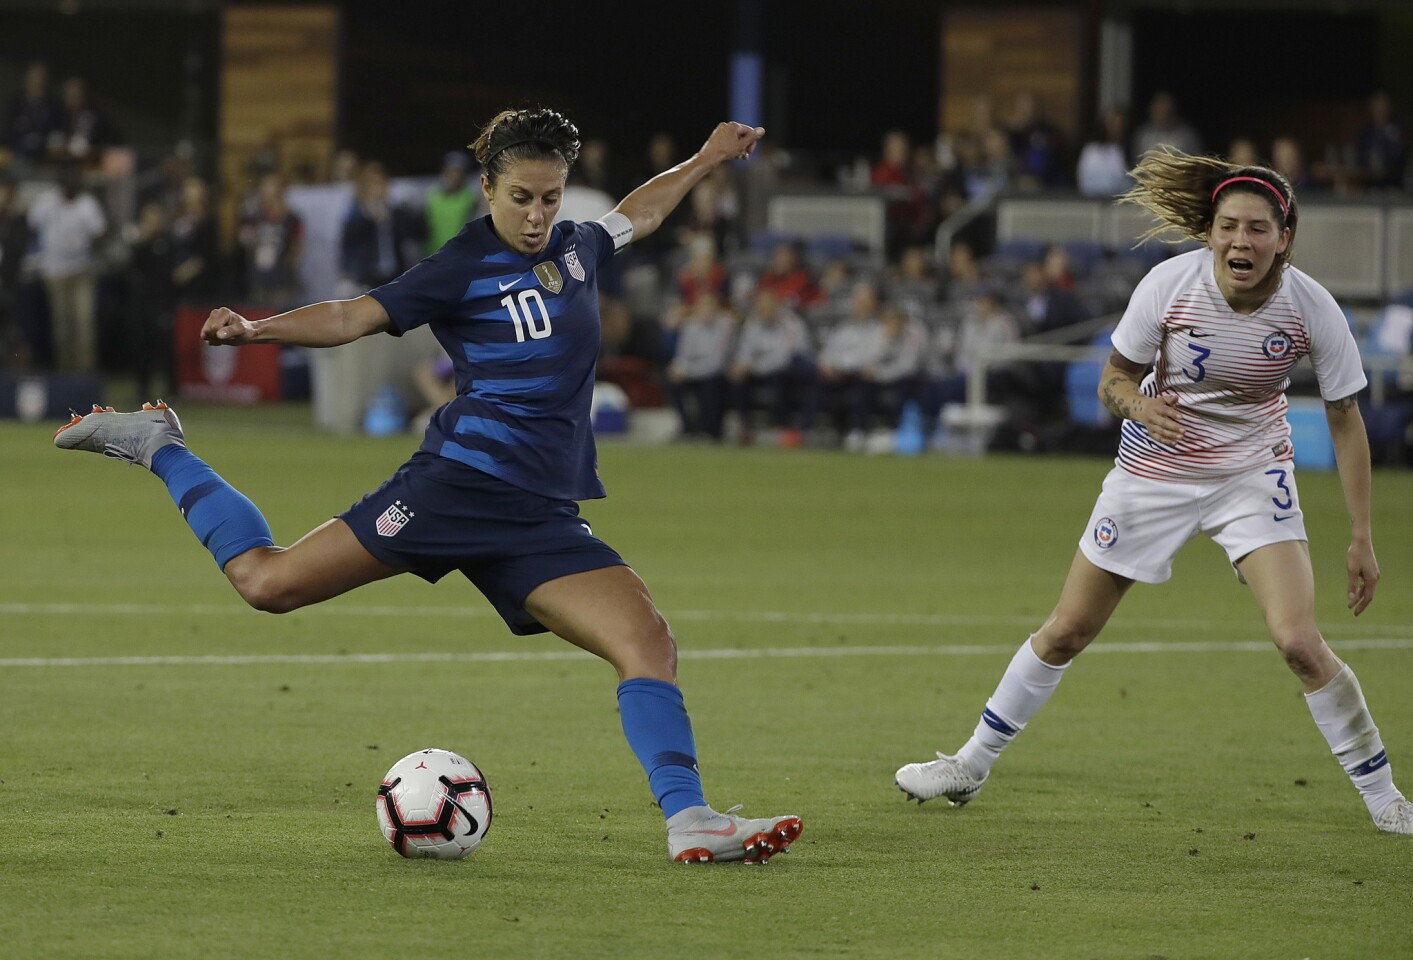 United States' Carli Lloyd (10) kicks the ball past Chile's Carla Guerrero to score a goal during the second half of an international friendly soccer match in San Jose, Calif., Tuesday, Sept. 4, 2018. (AP Photo/Jeff Chiu)